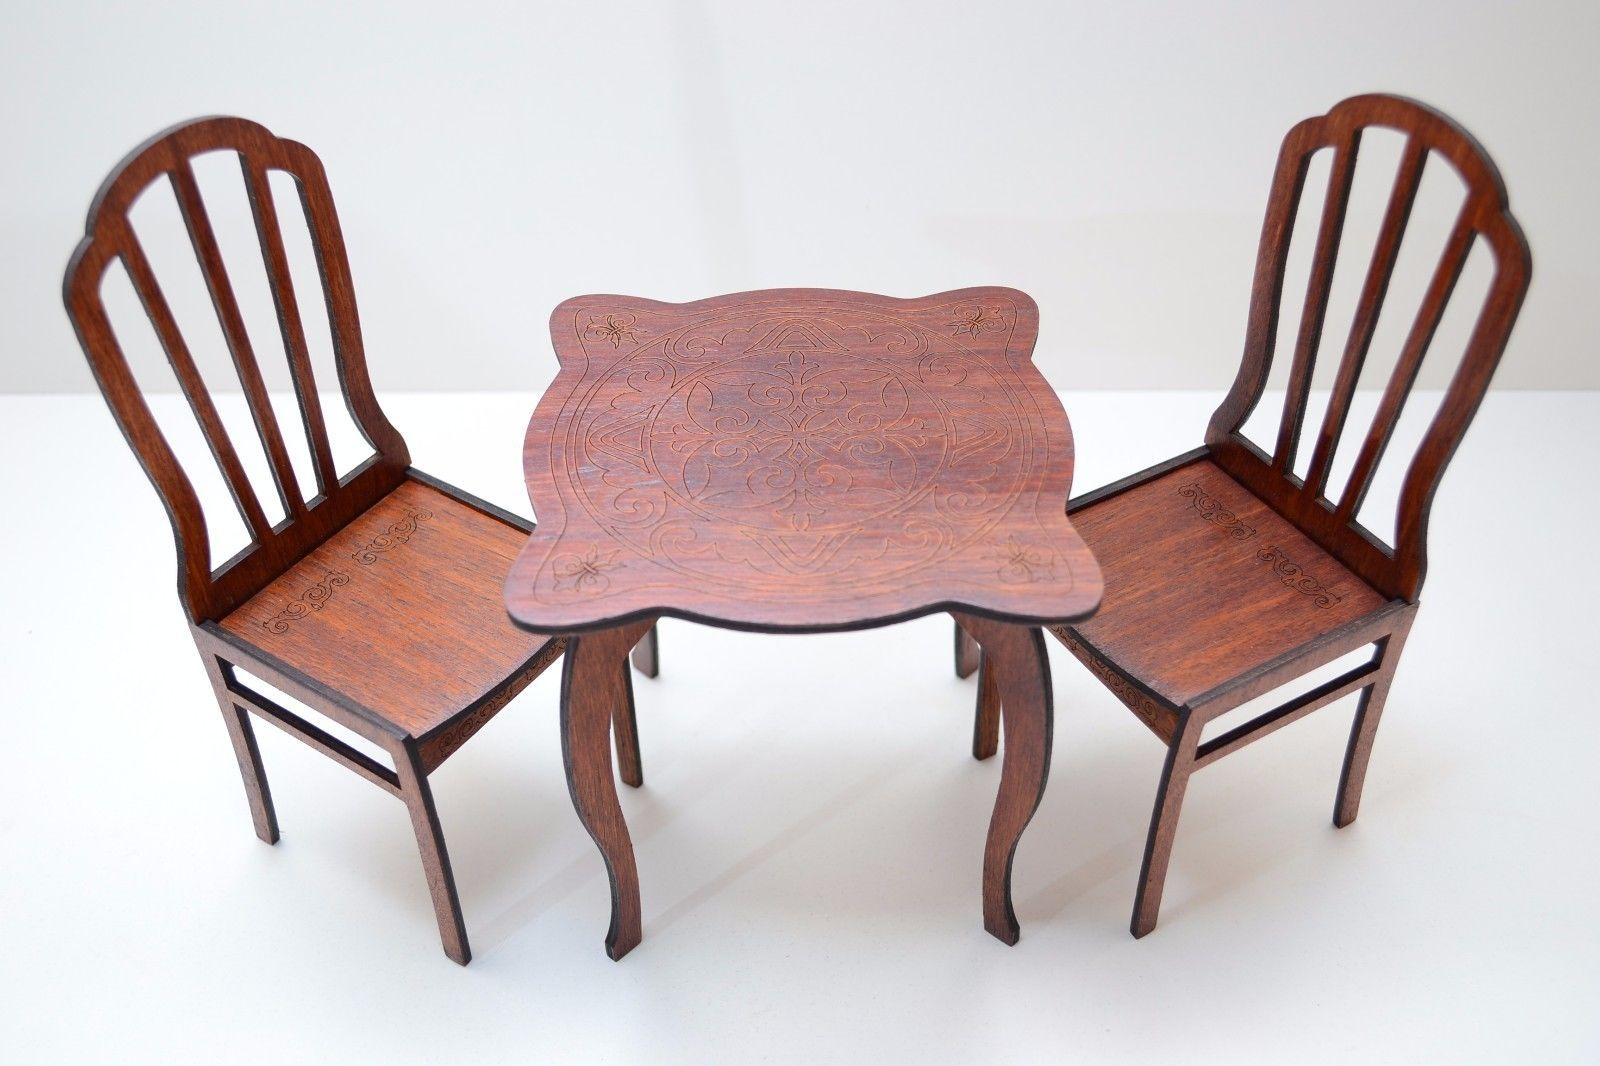 barbie wood furniture. Furniture For Doll Roombox 1:6 12 Inch Barbie FR IT Wooden 1 Table 2 Chairs Wood